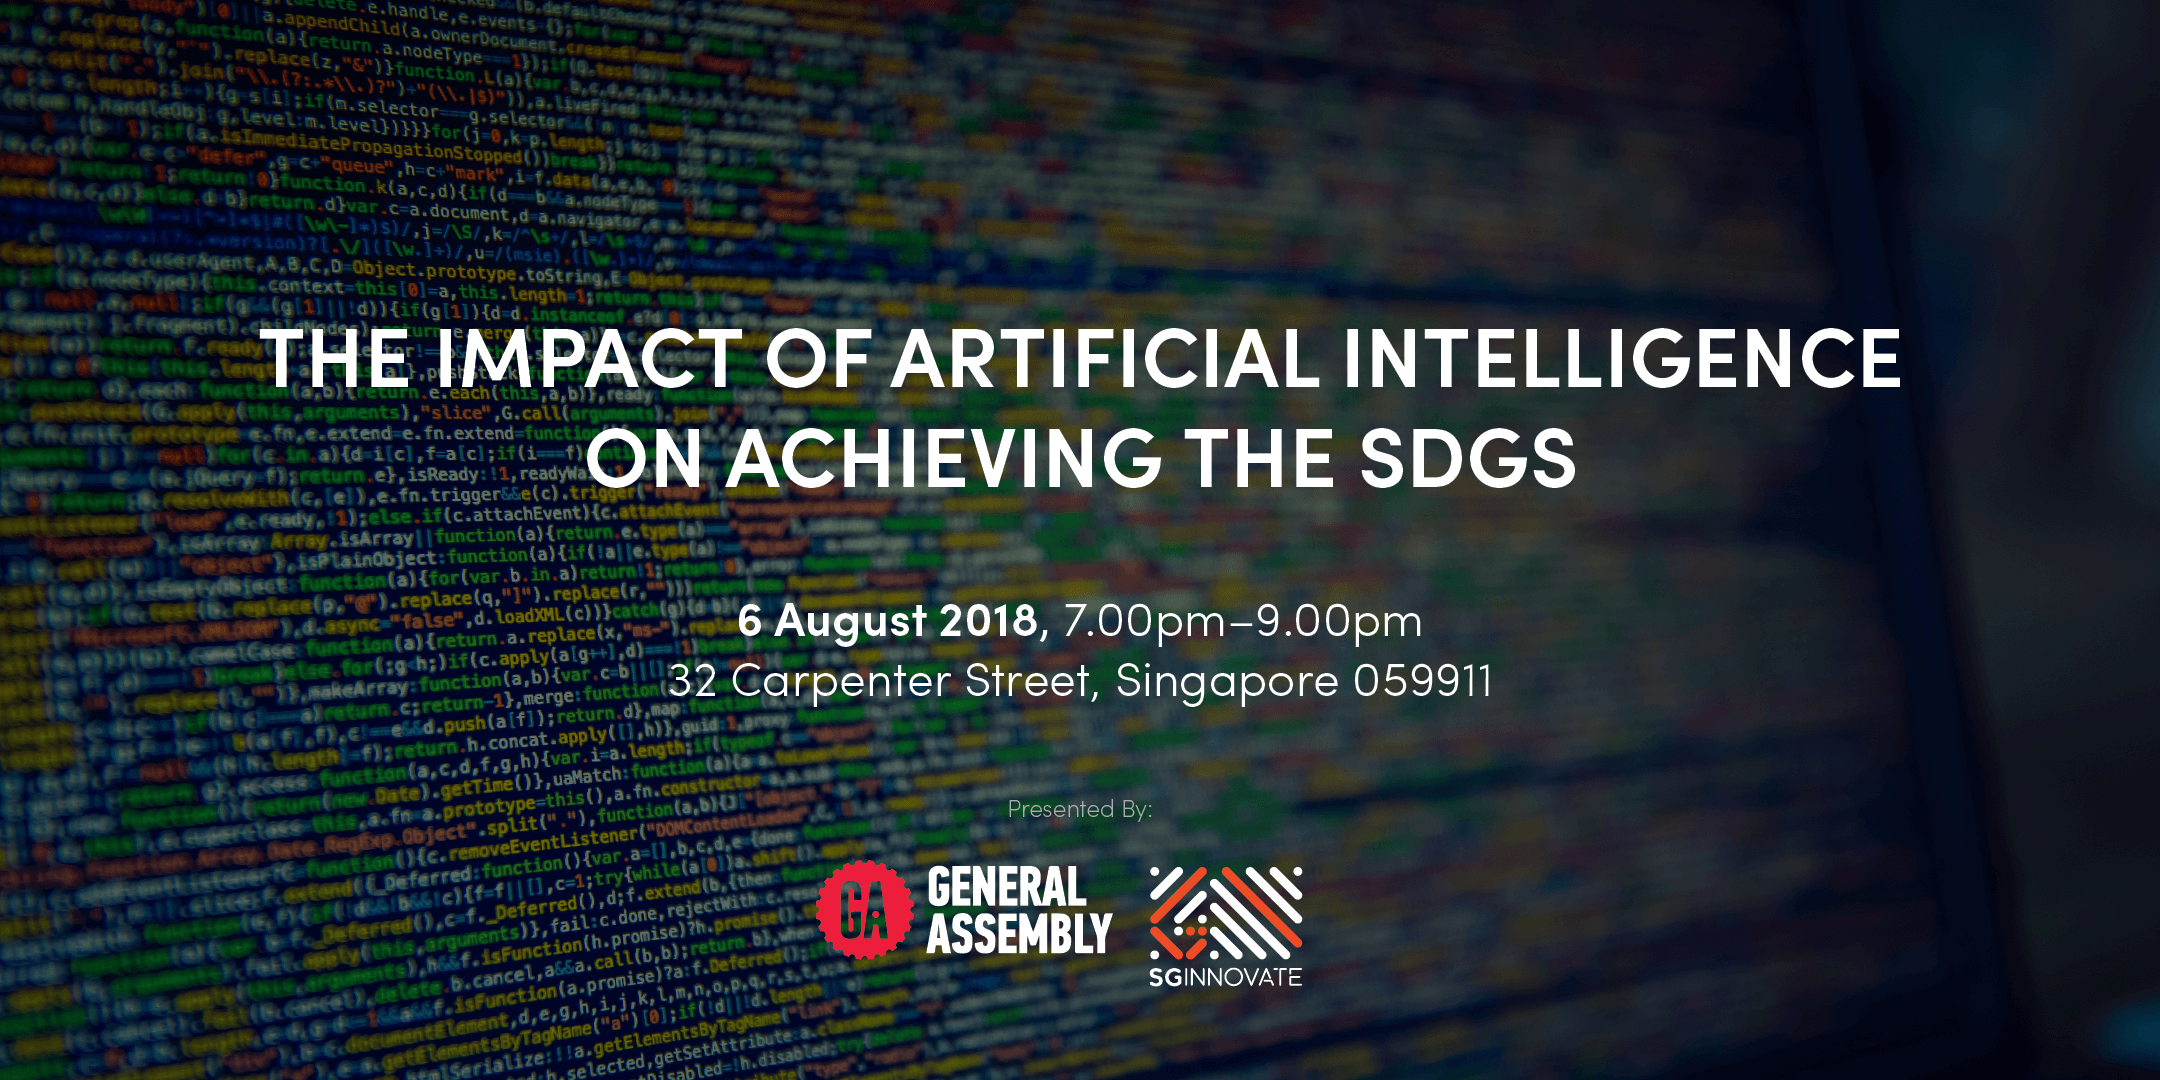 The Impact of Artificial Intelligence on Achieving the SDG